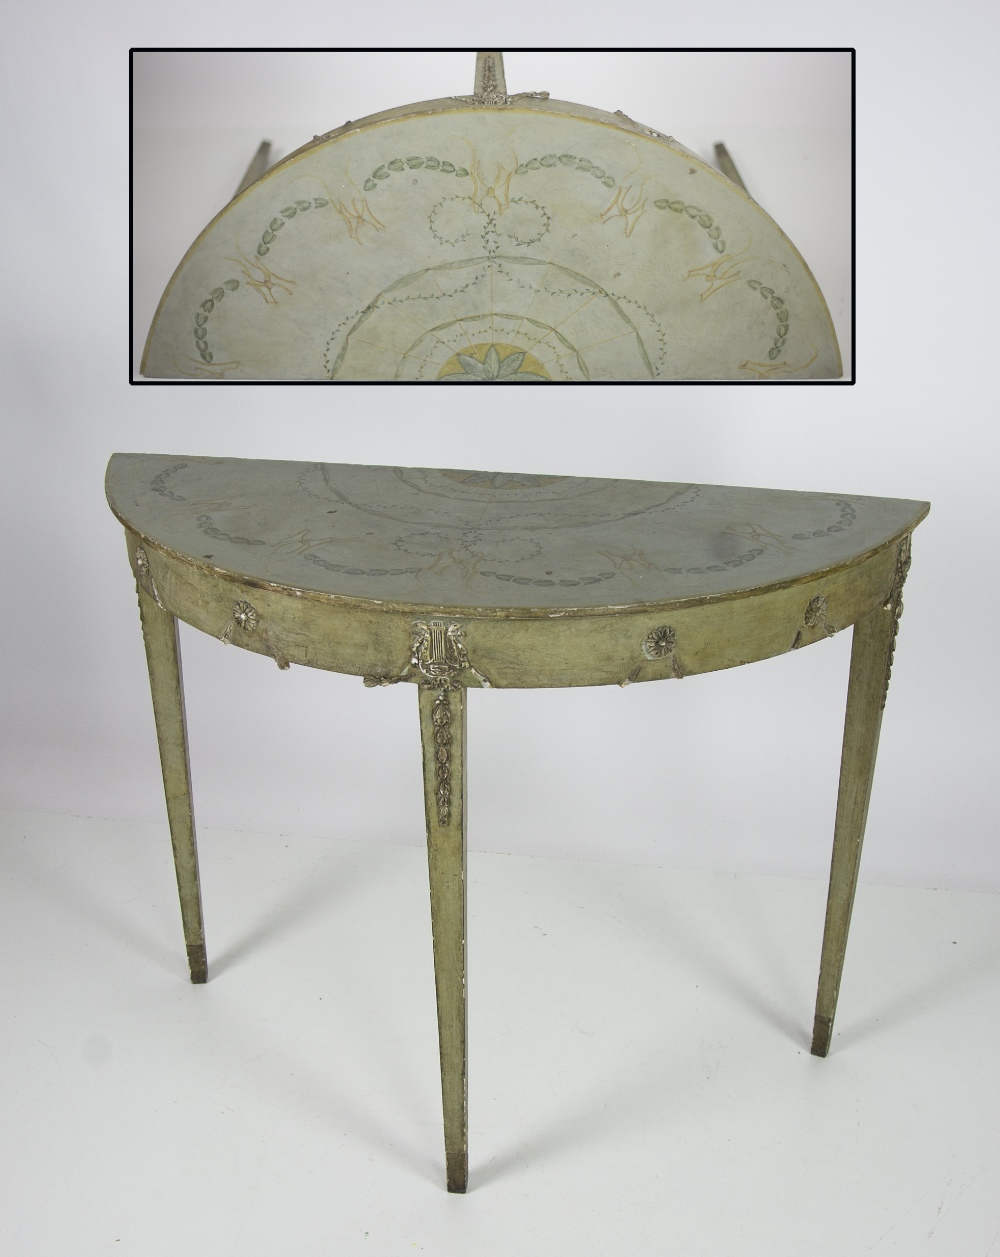 Lot 35 - A Neo-classical style painted and gesso